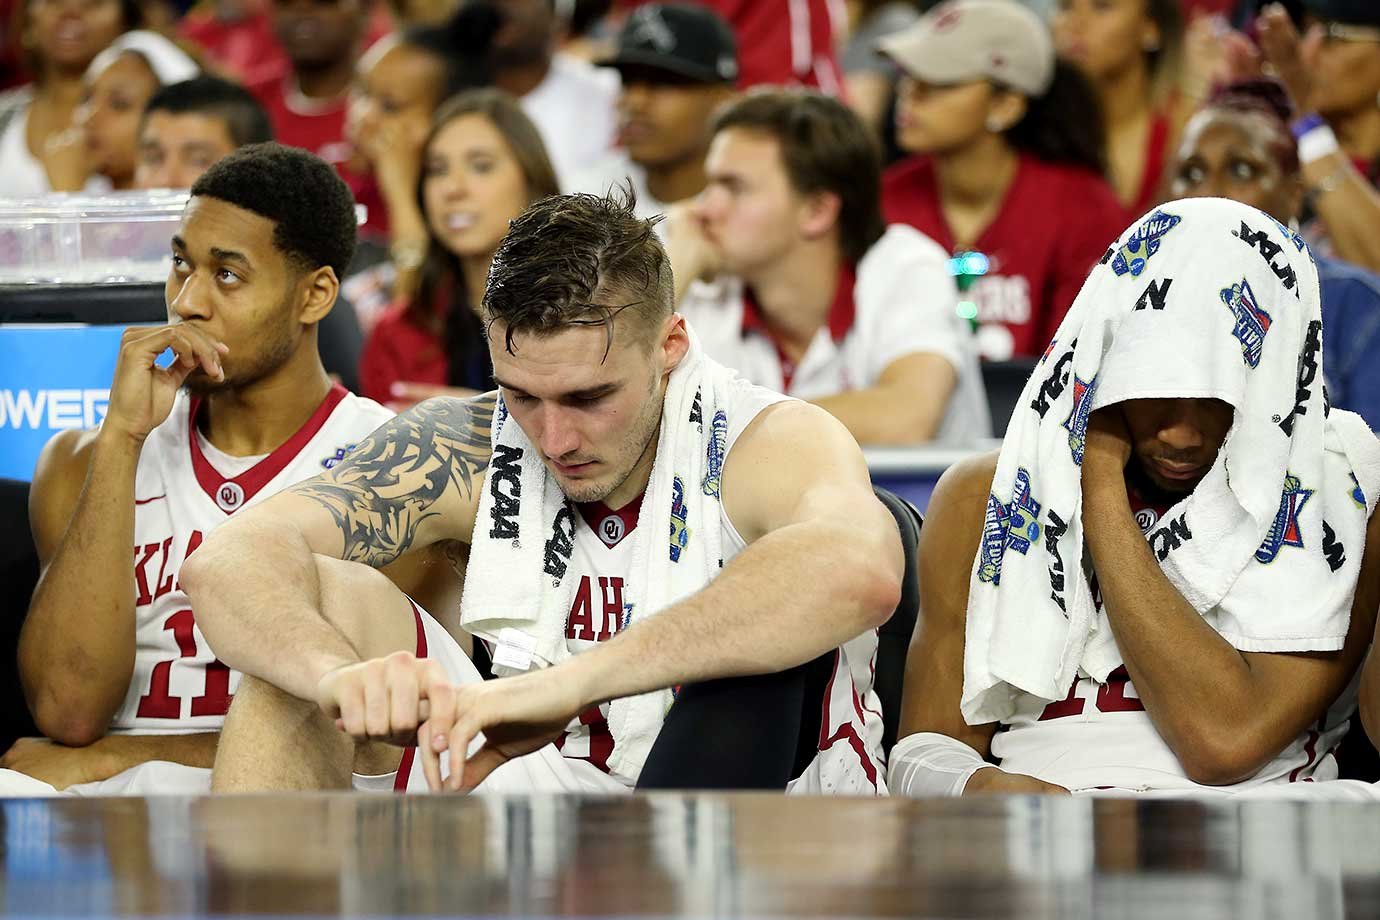 Isaiah Cousins, Ryan Spangler and Khadeem Lattin of the Oklahoma Sooners look on from the bench in the loss to Villanova.